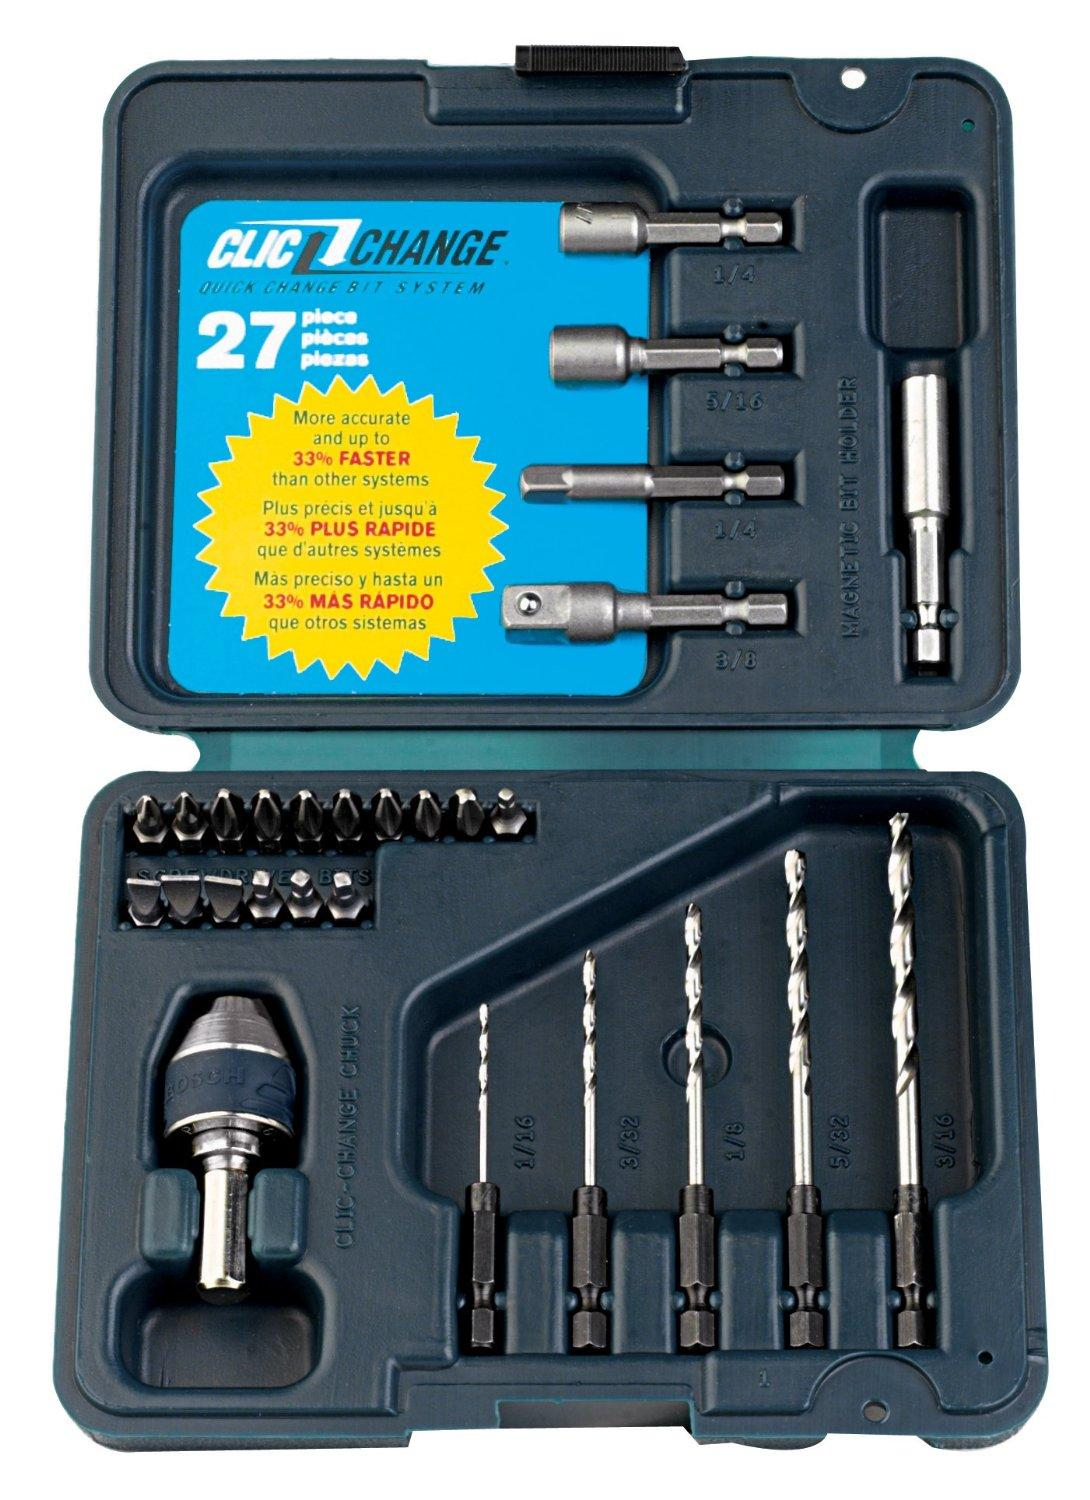 $13.1 Bosch CC2130 Clic-Change 27-Piece Drilling and Driving Set with Clic